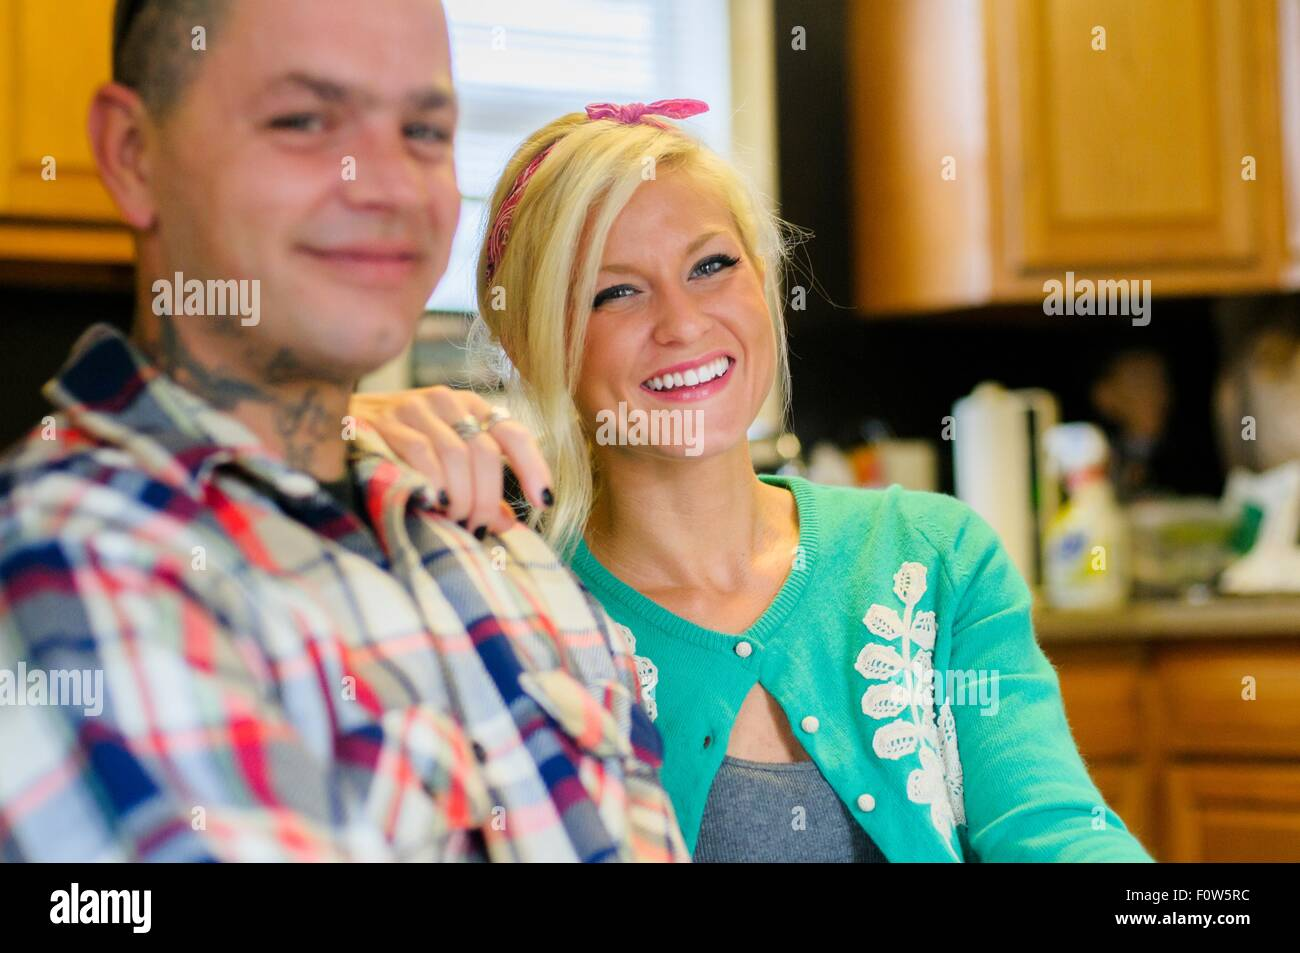 Young woman with hand on man's shoulder, smiling - Stock Image